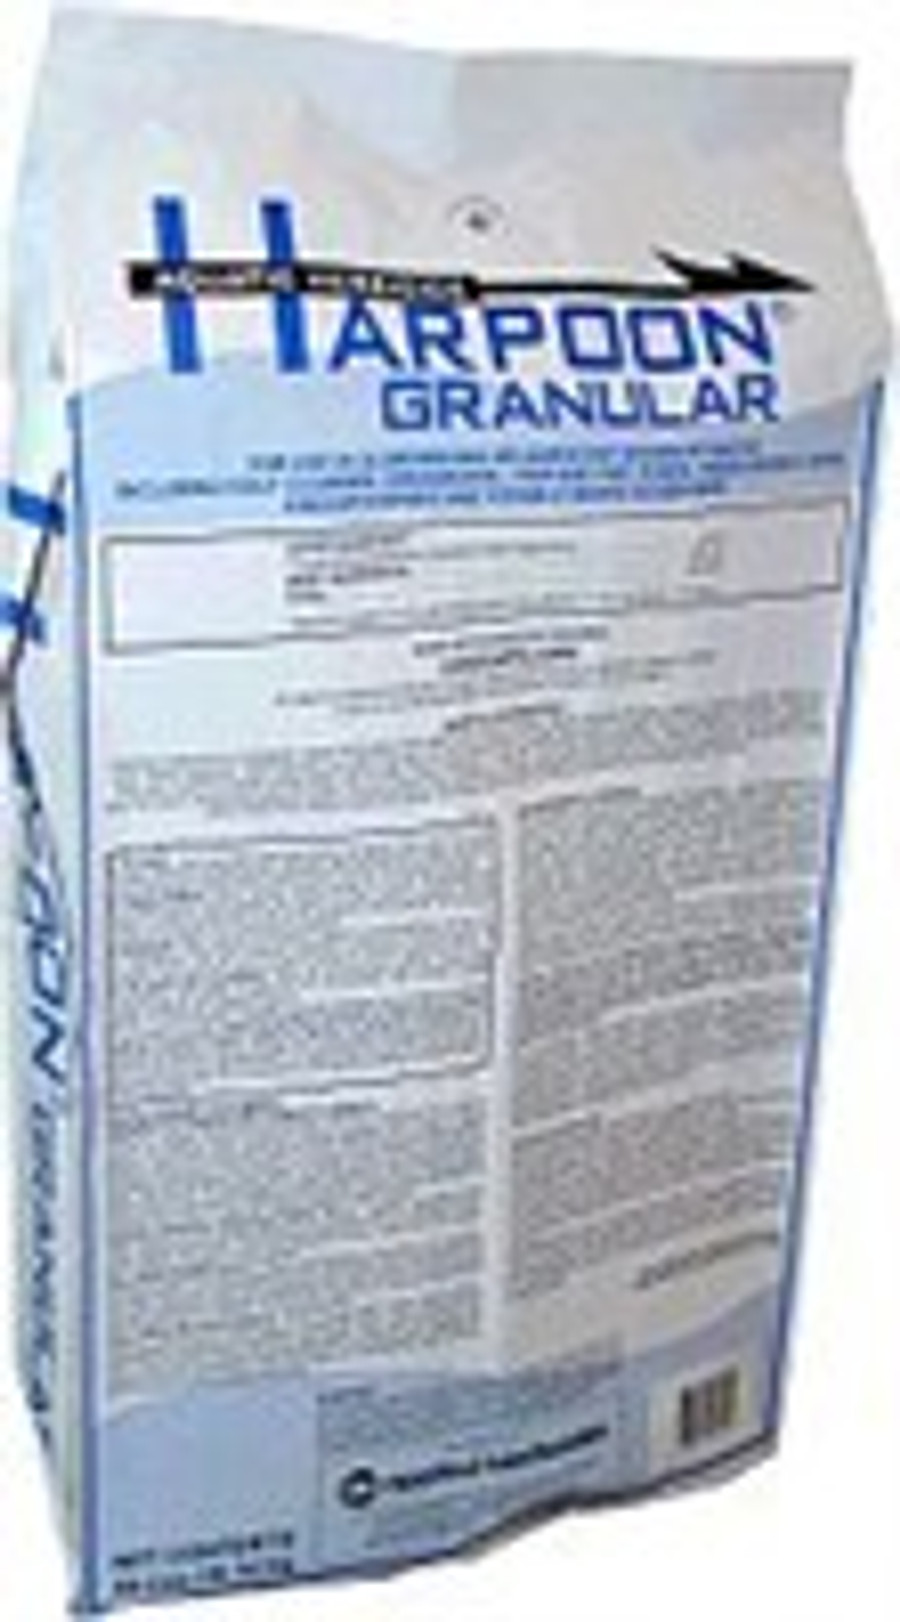 Harpoon Granular